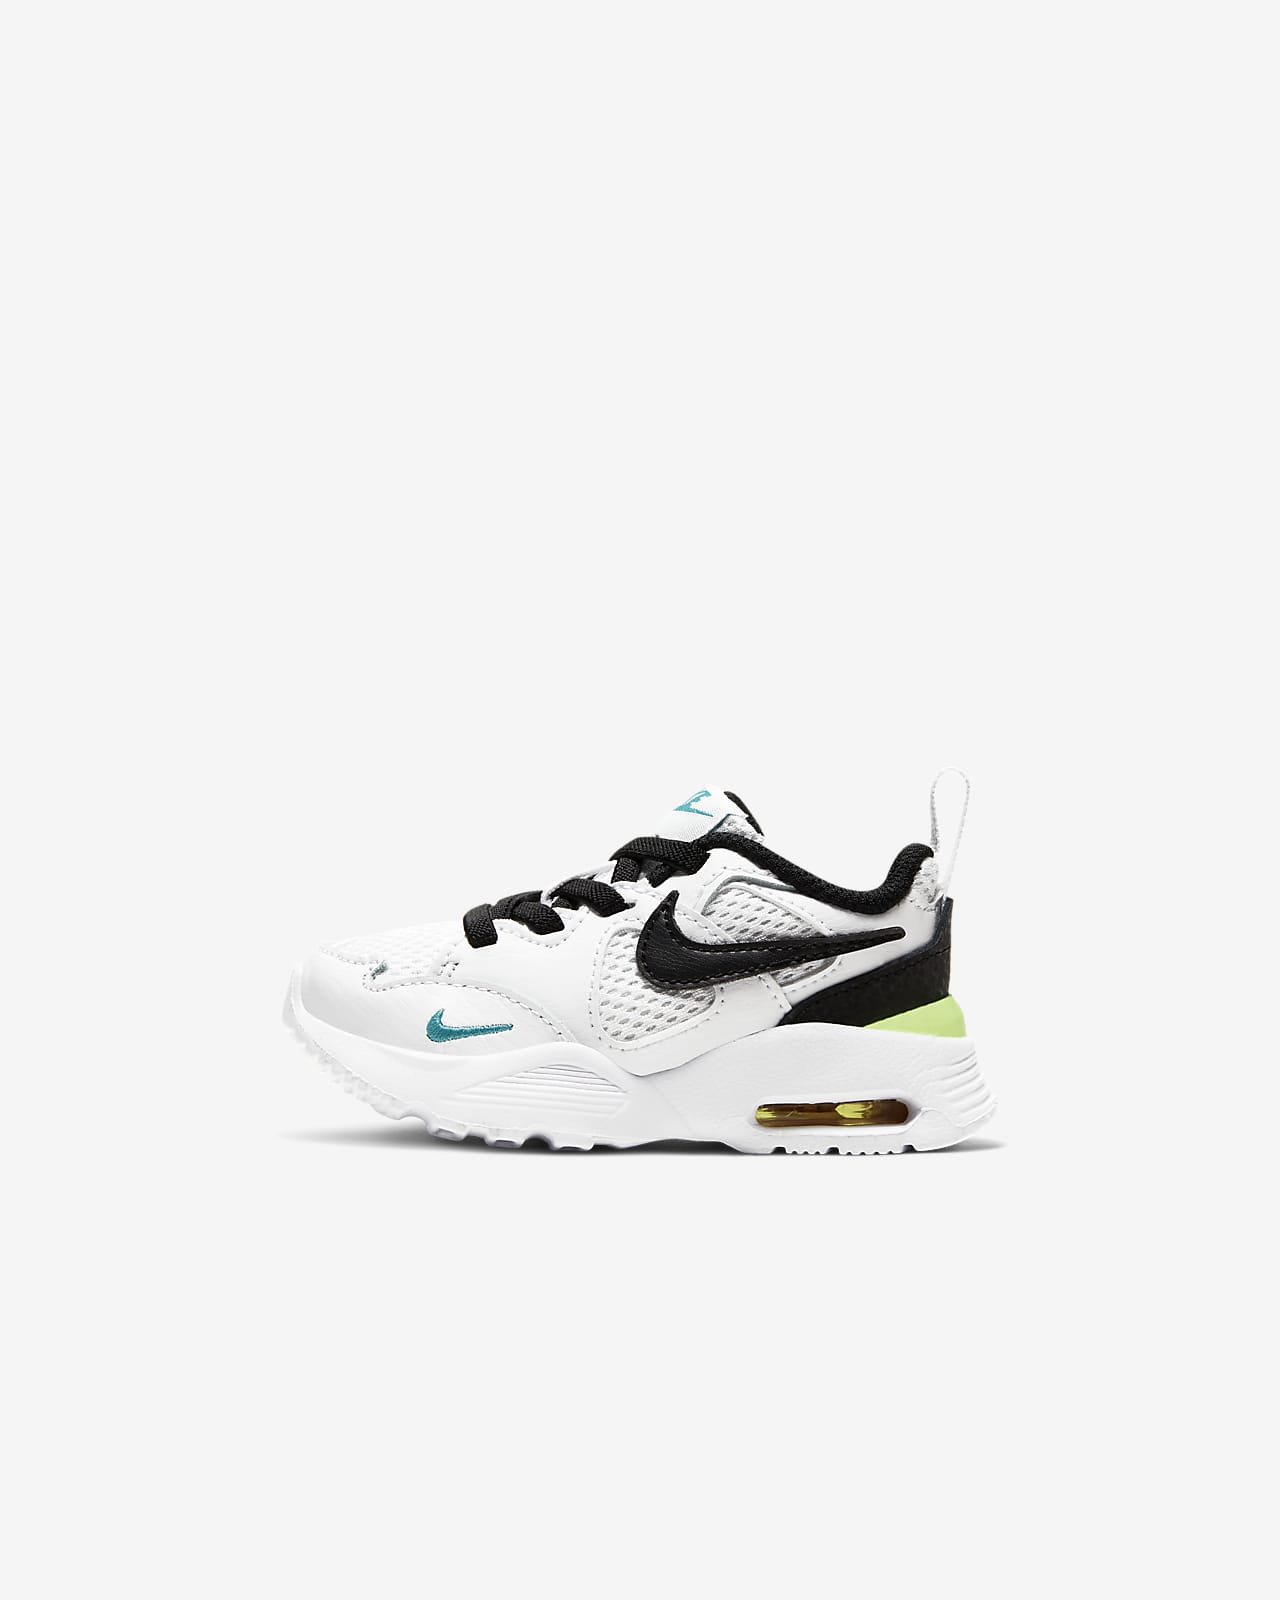 chaussures blanches pour enfant nike